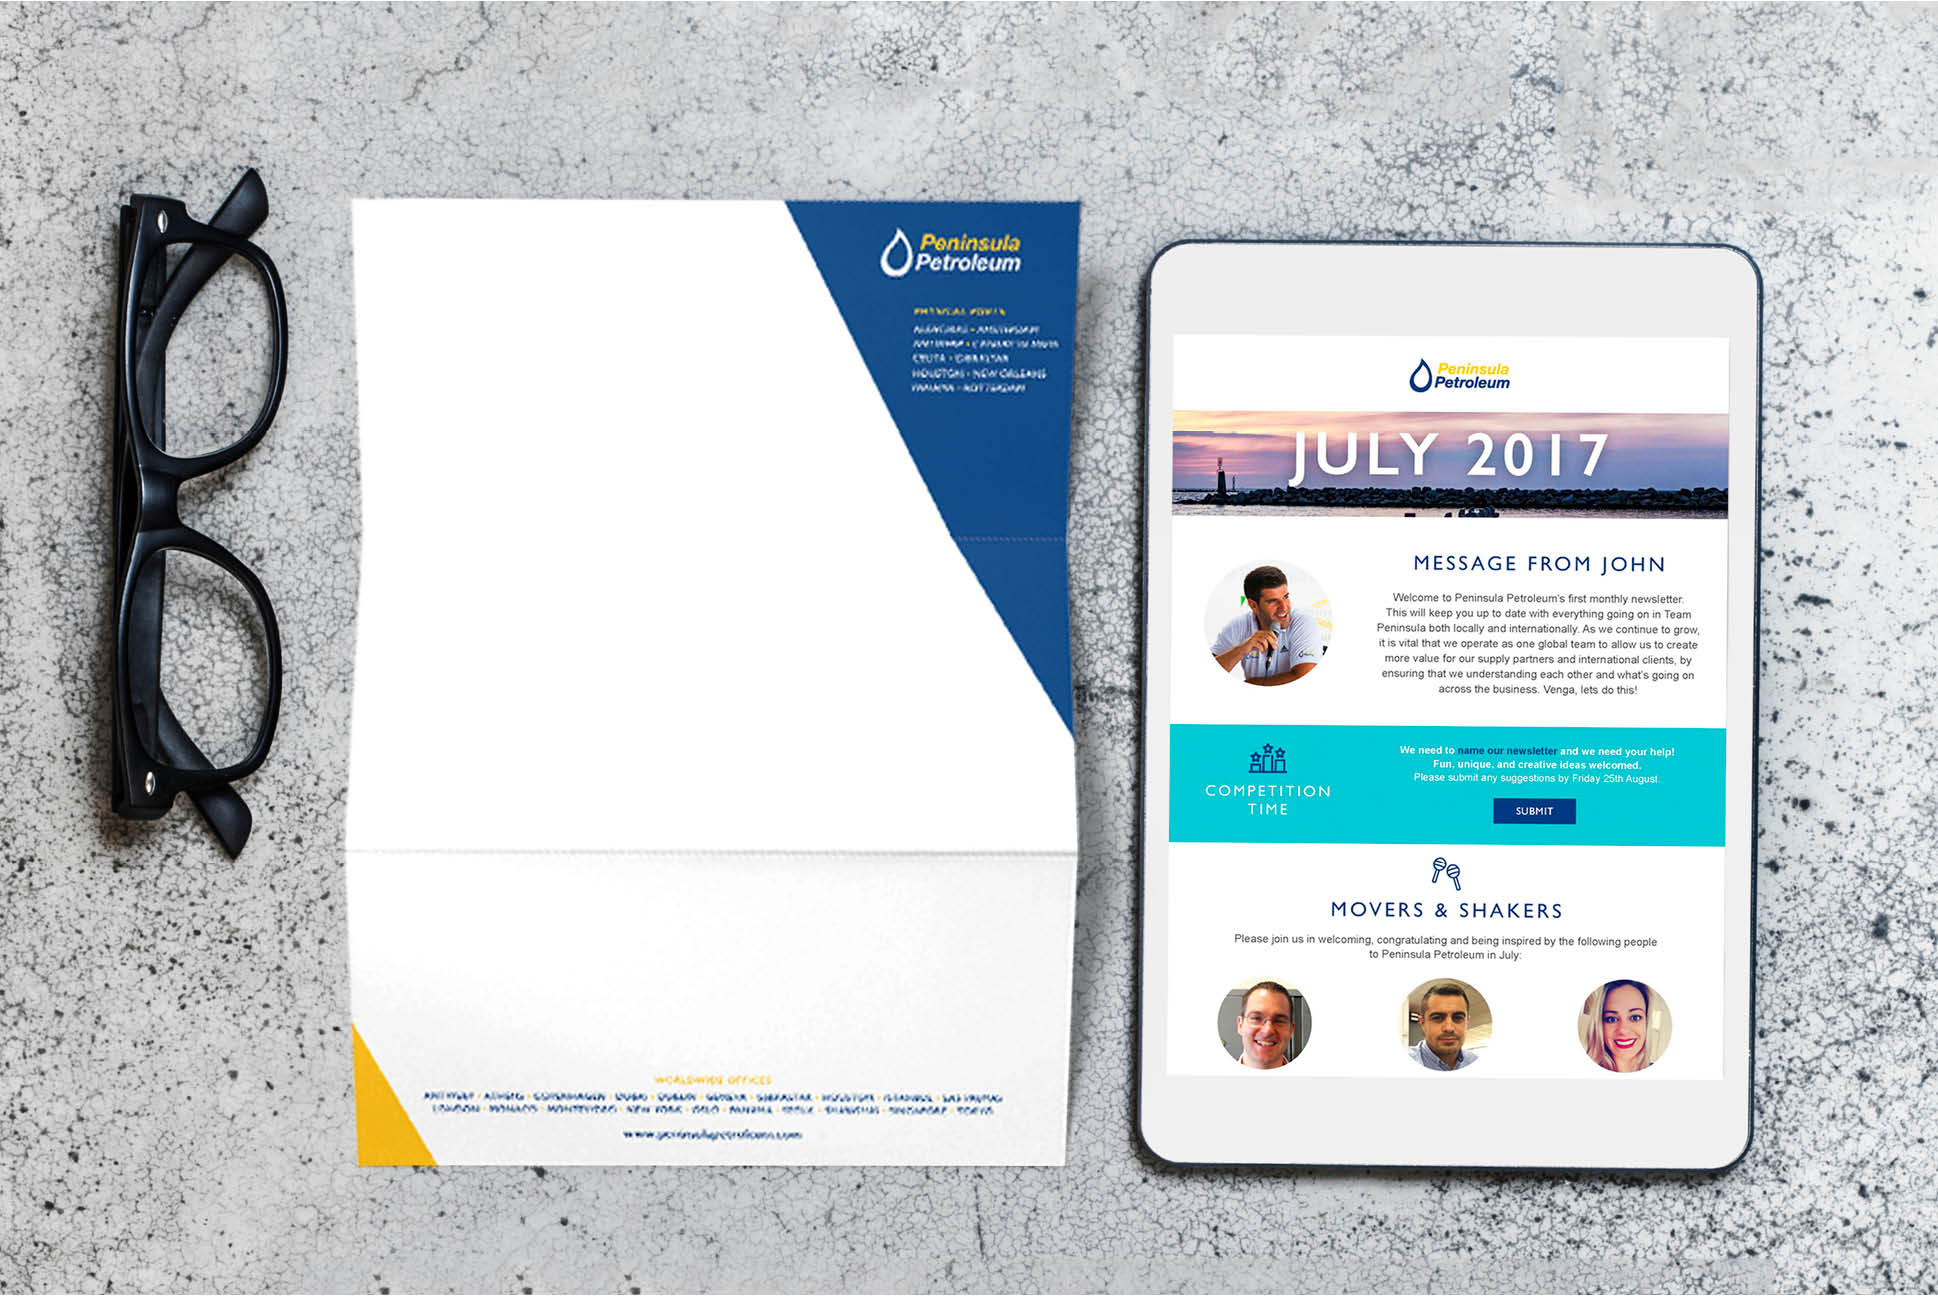 Peninsula Petroleum letterhead and email | Branding and Marketing Services - Independent Marketing | IM London